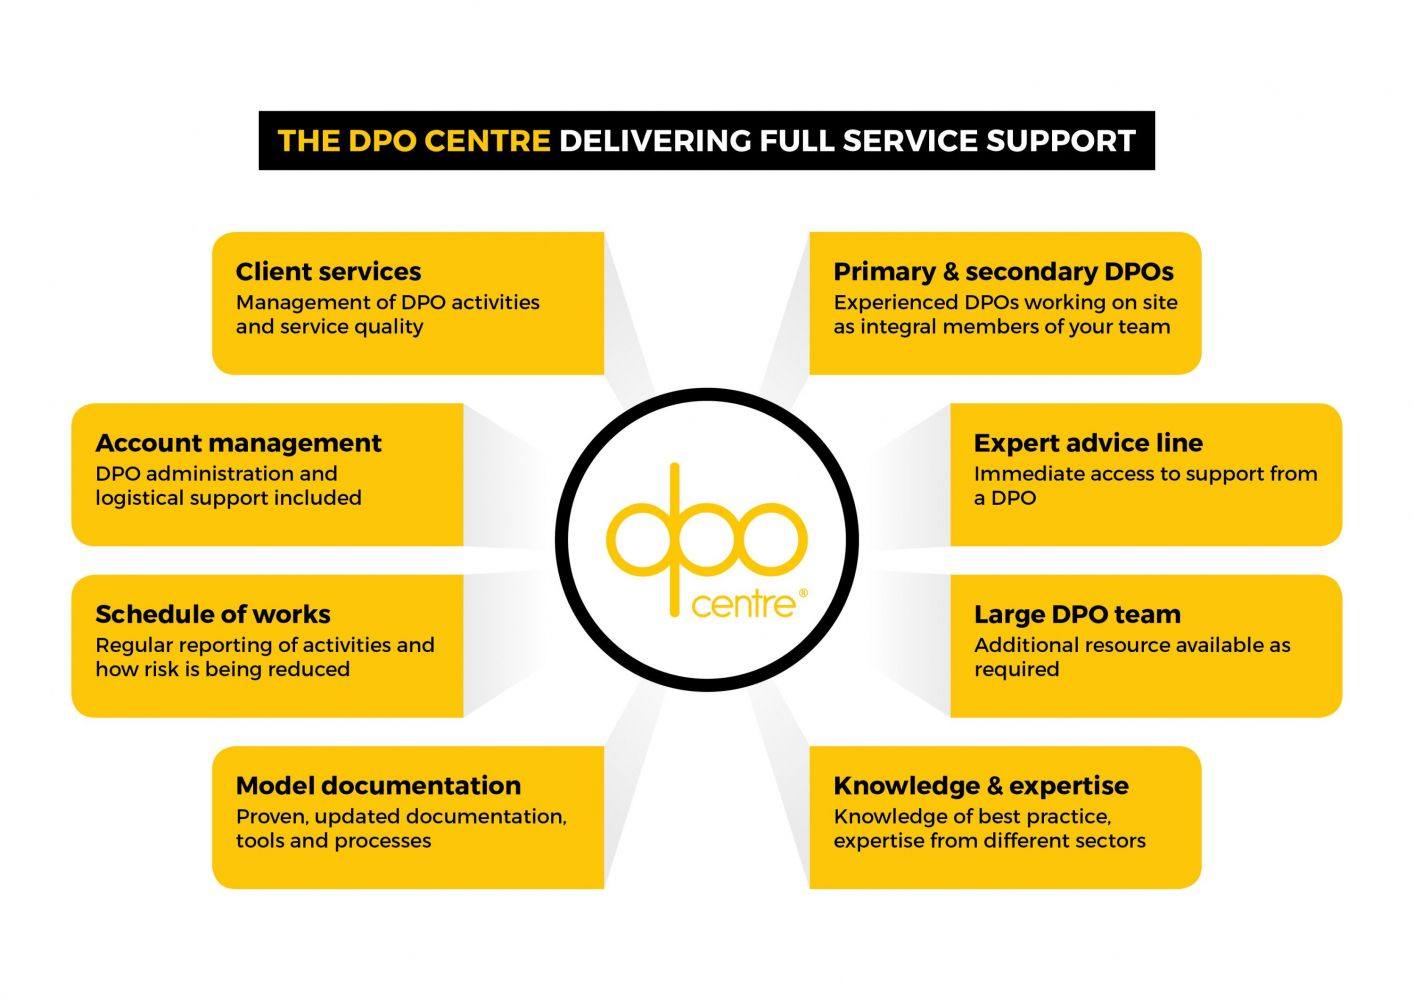 DPO centre full service support